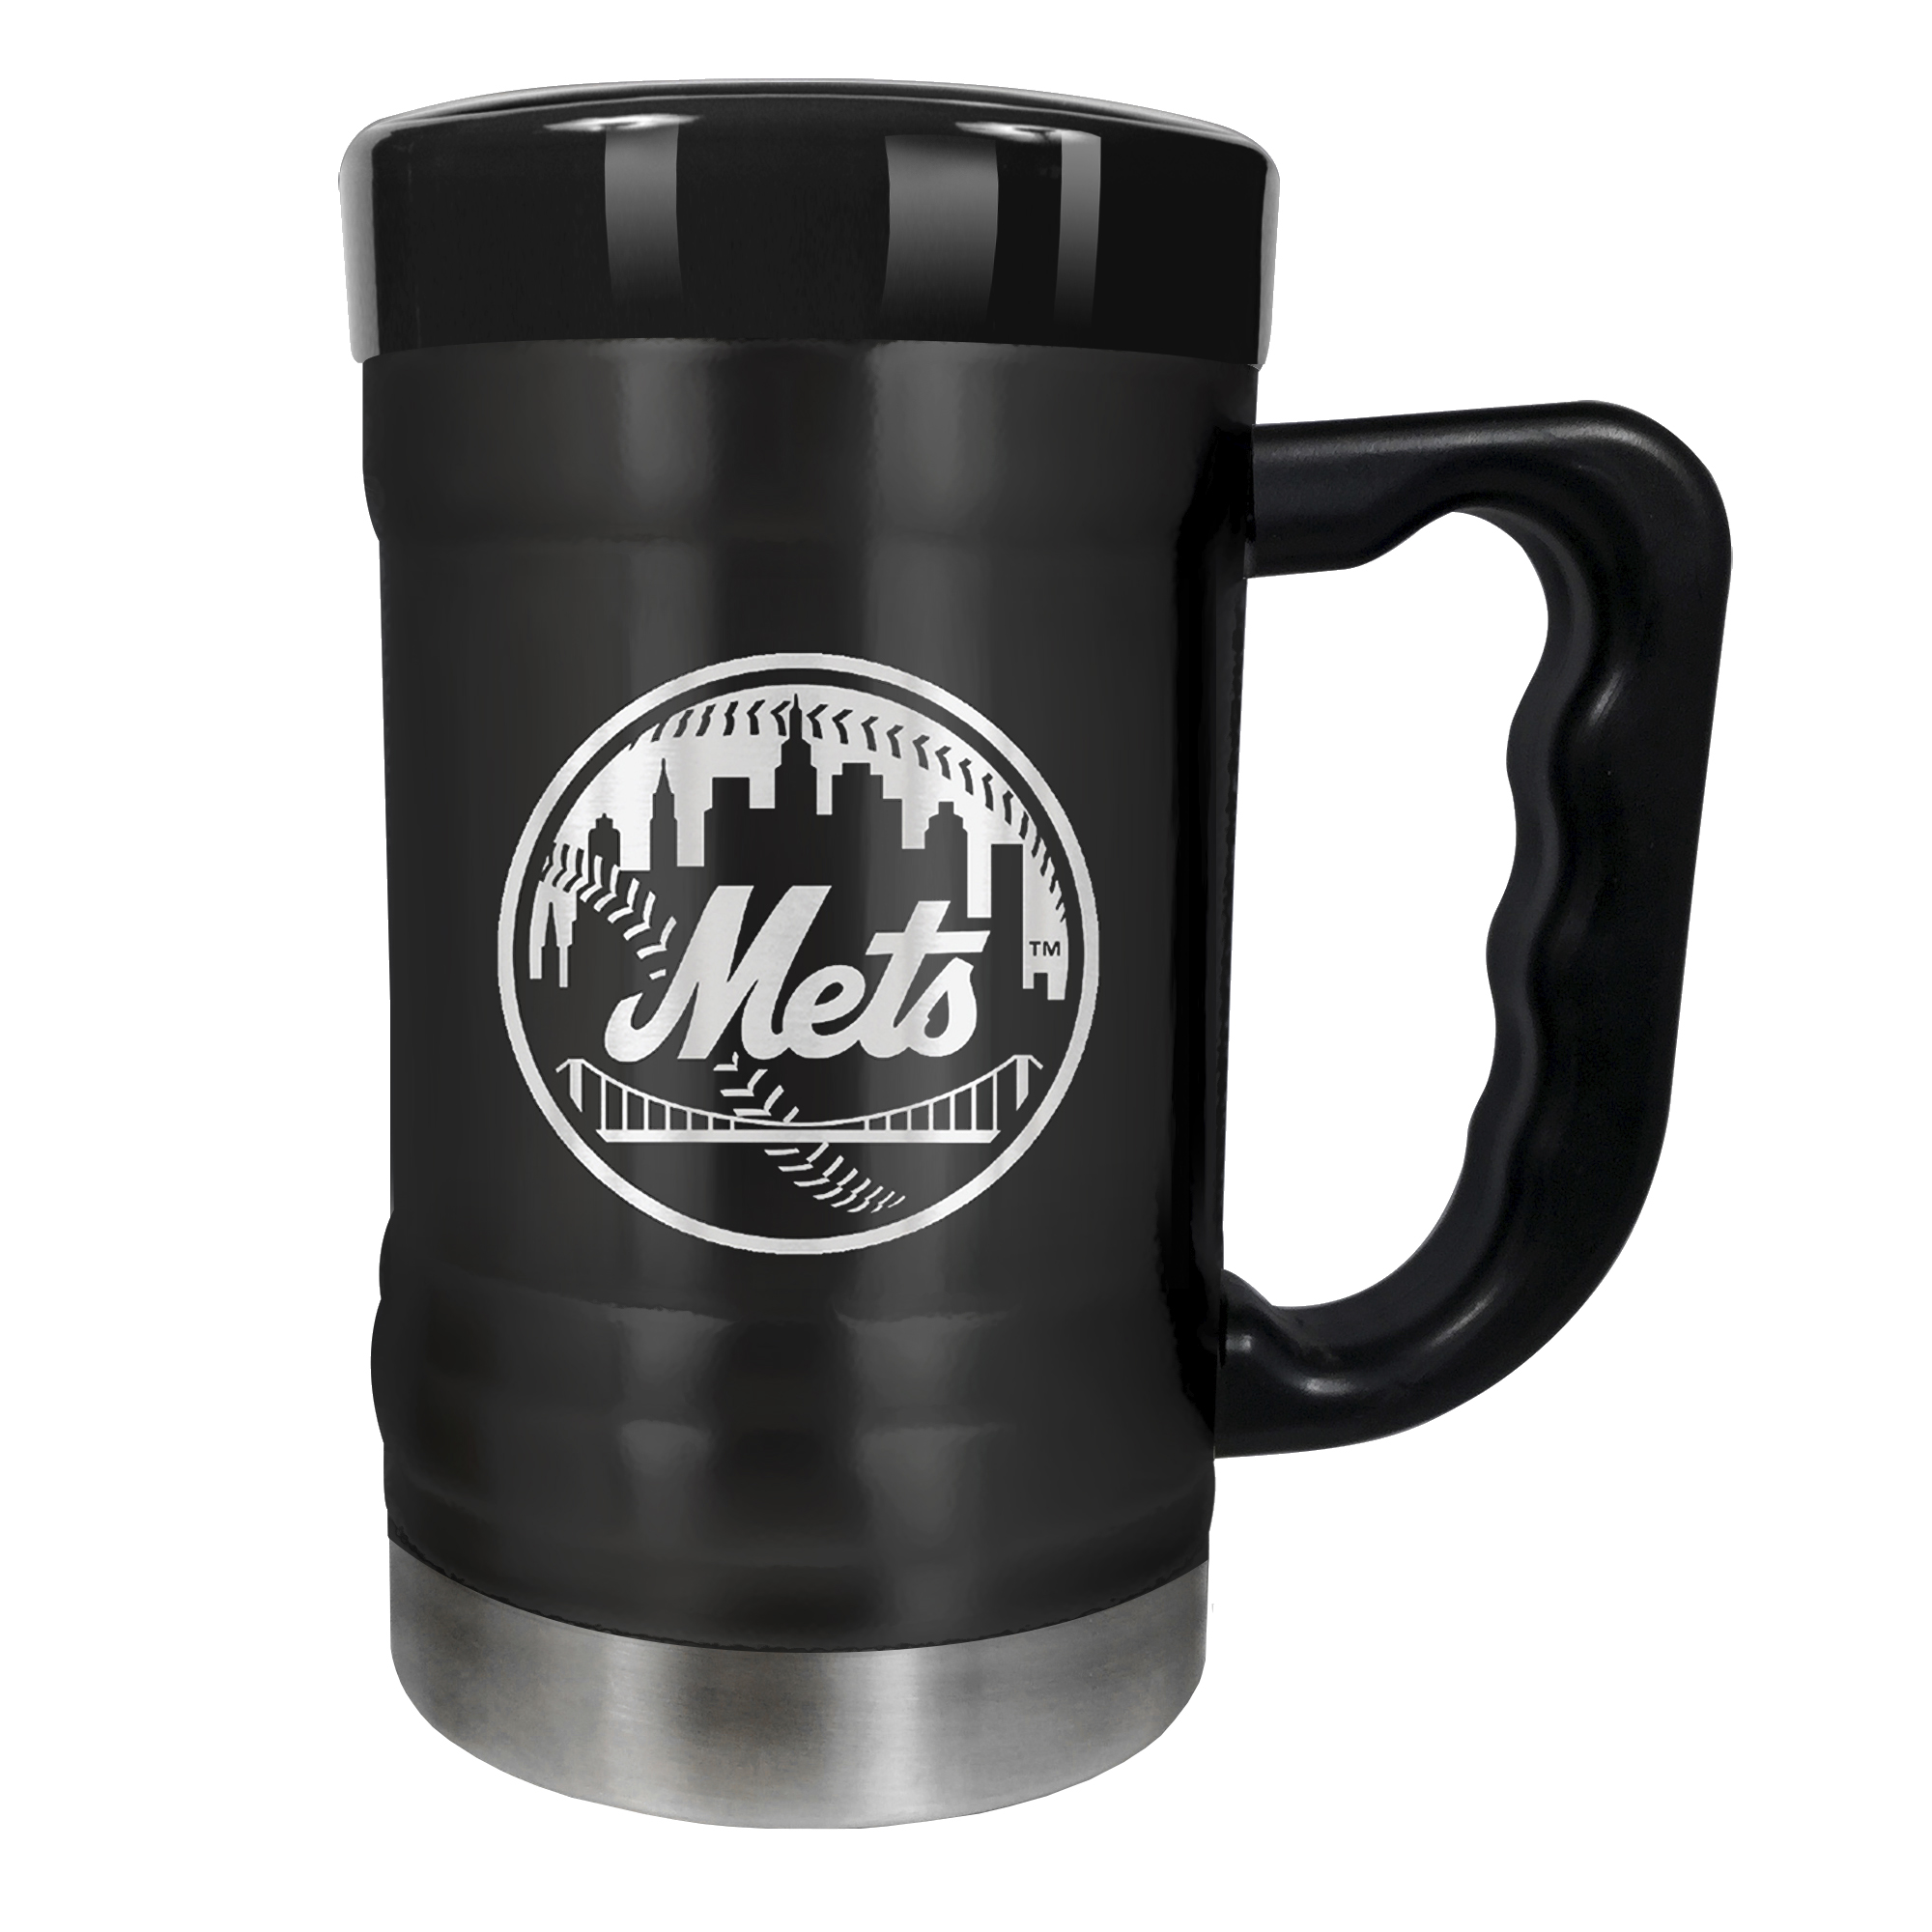 New York Mets 15oz. Stealth Coach Coffee Mug - Black - No Size